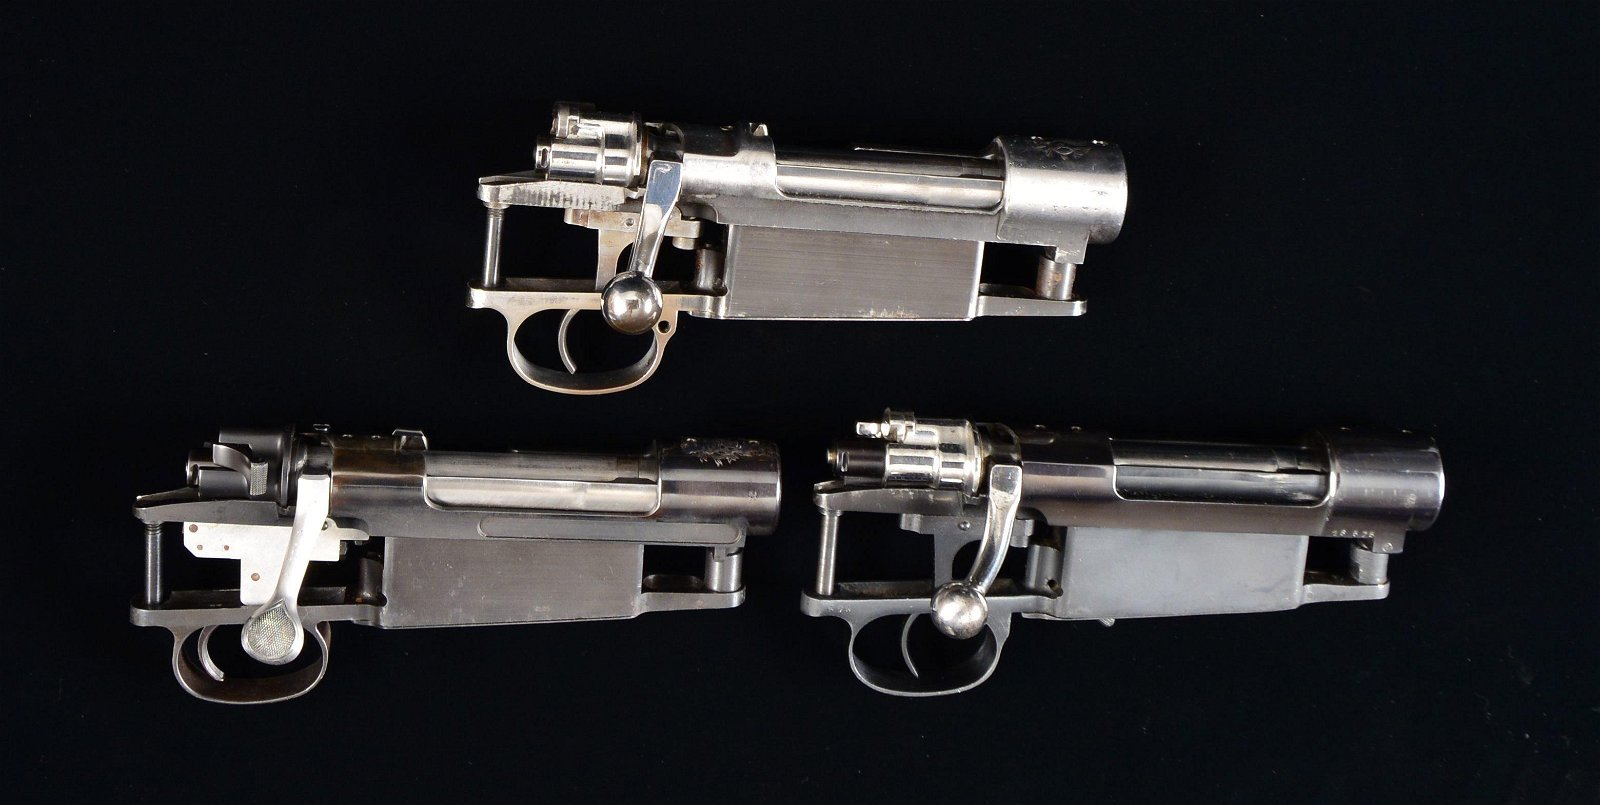 3 MAUSER 98 TYPE SPORTERIZED RIFLE BOLT ACTIONS.